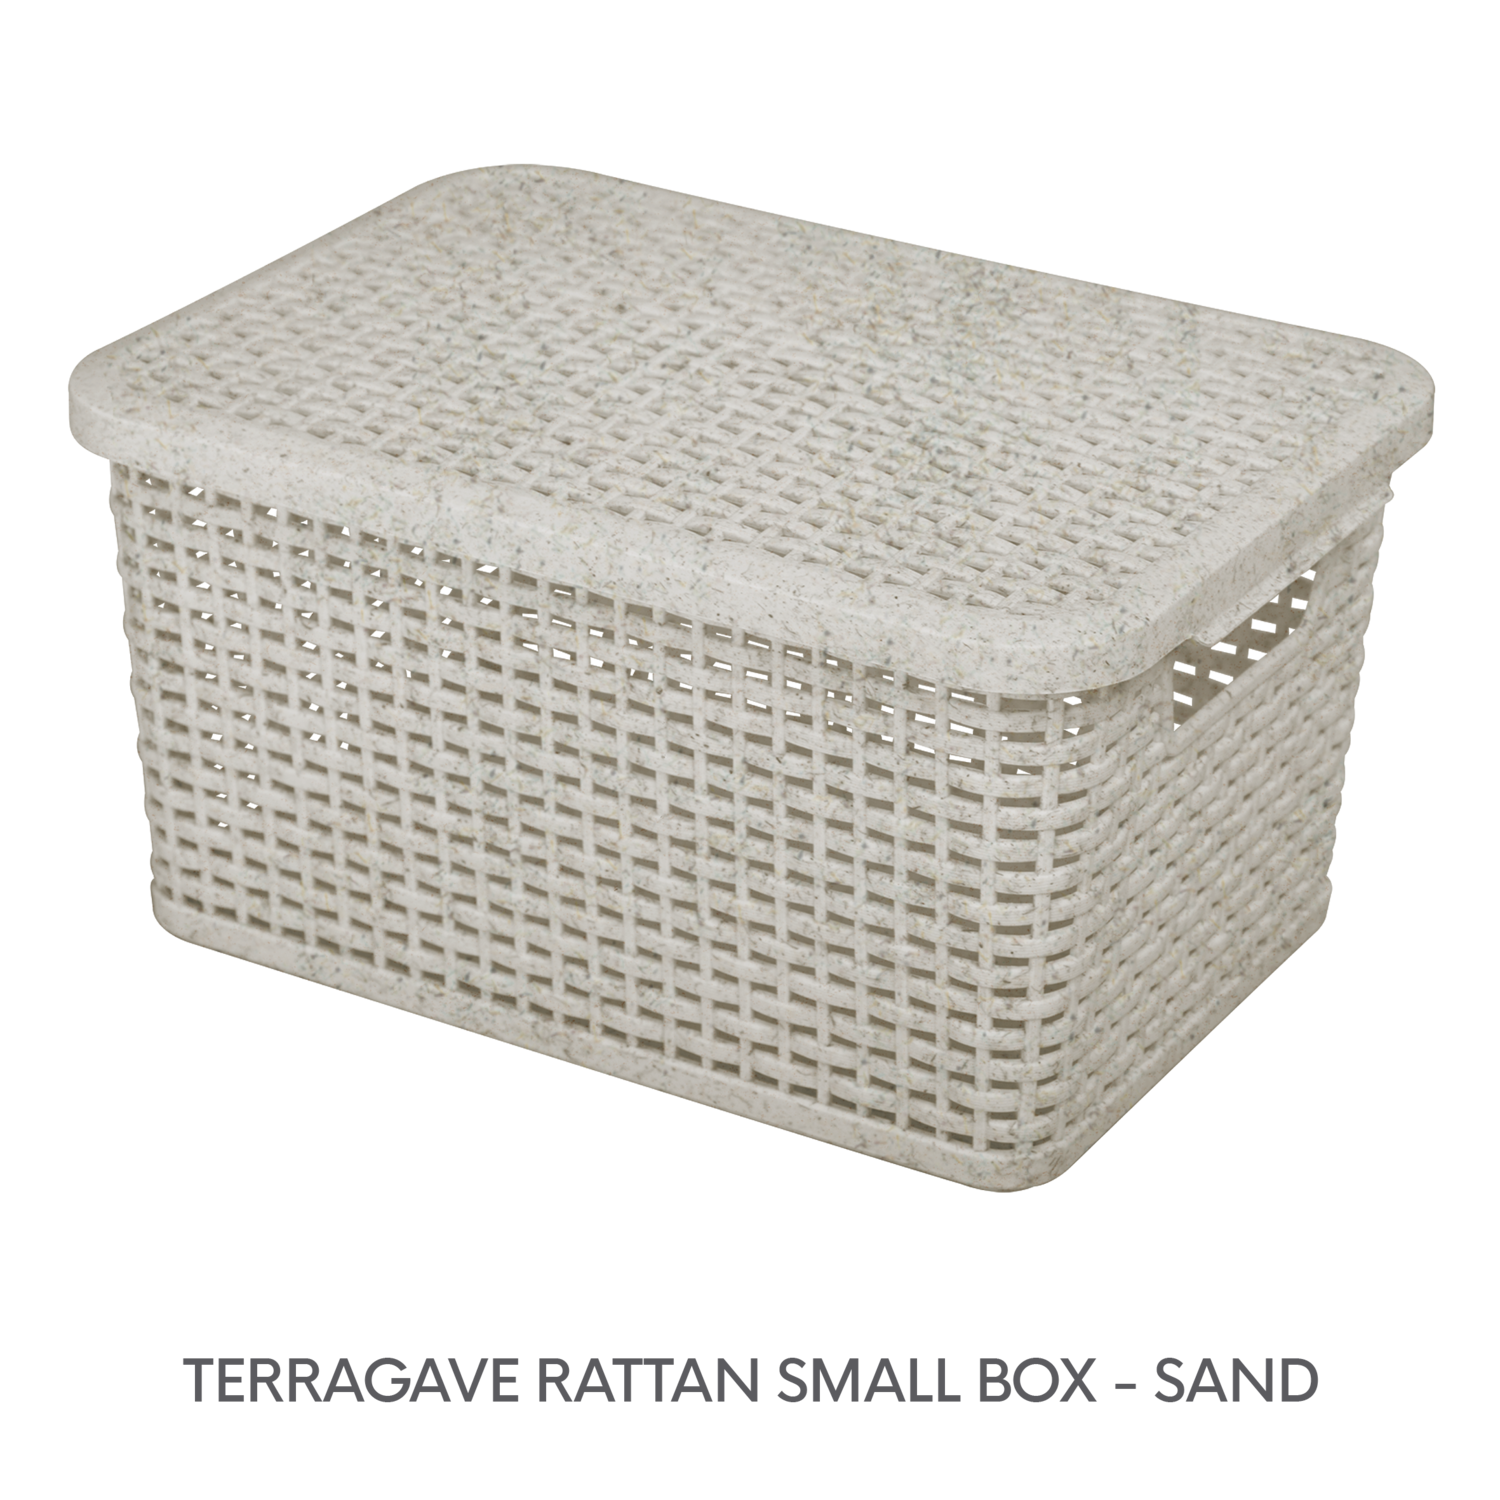 2 TERRAGAVE RATTAN SMALL BOX - SAND.png